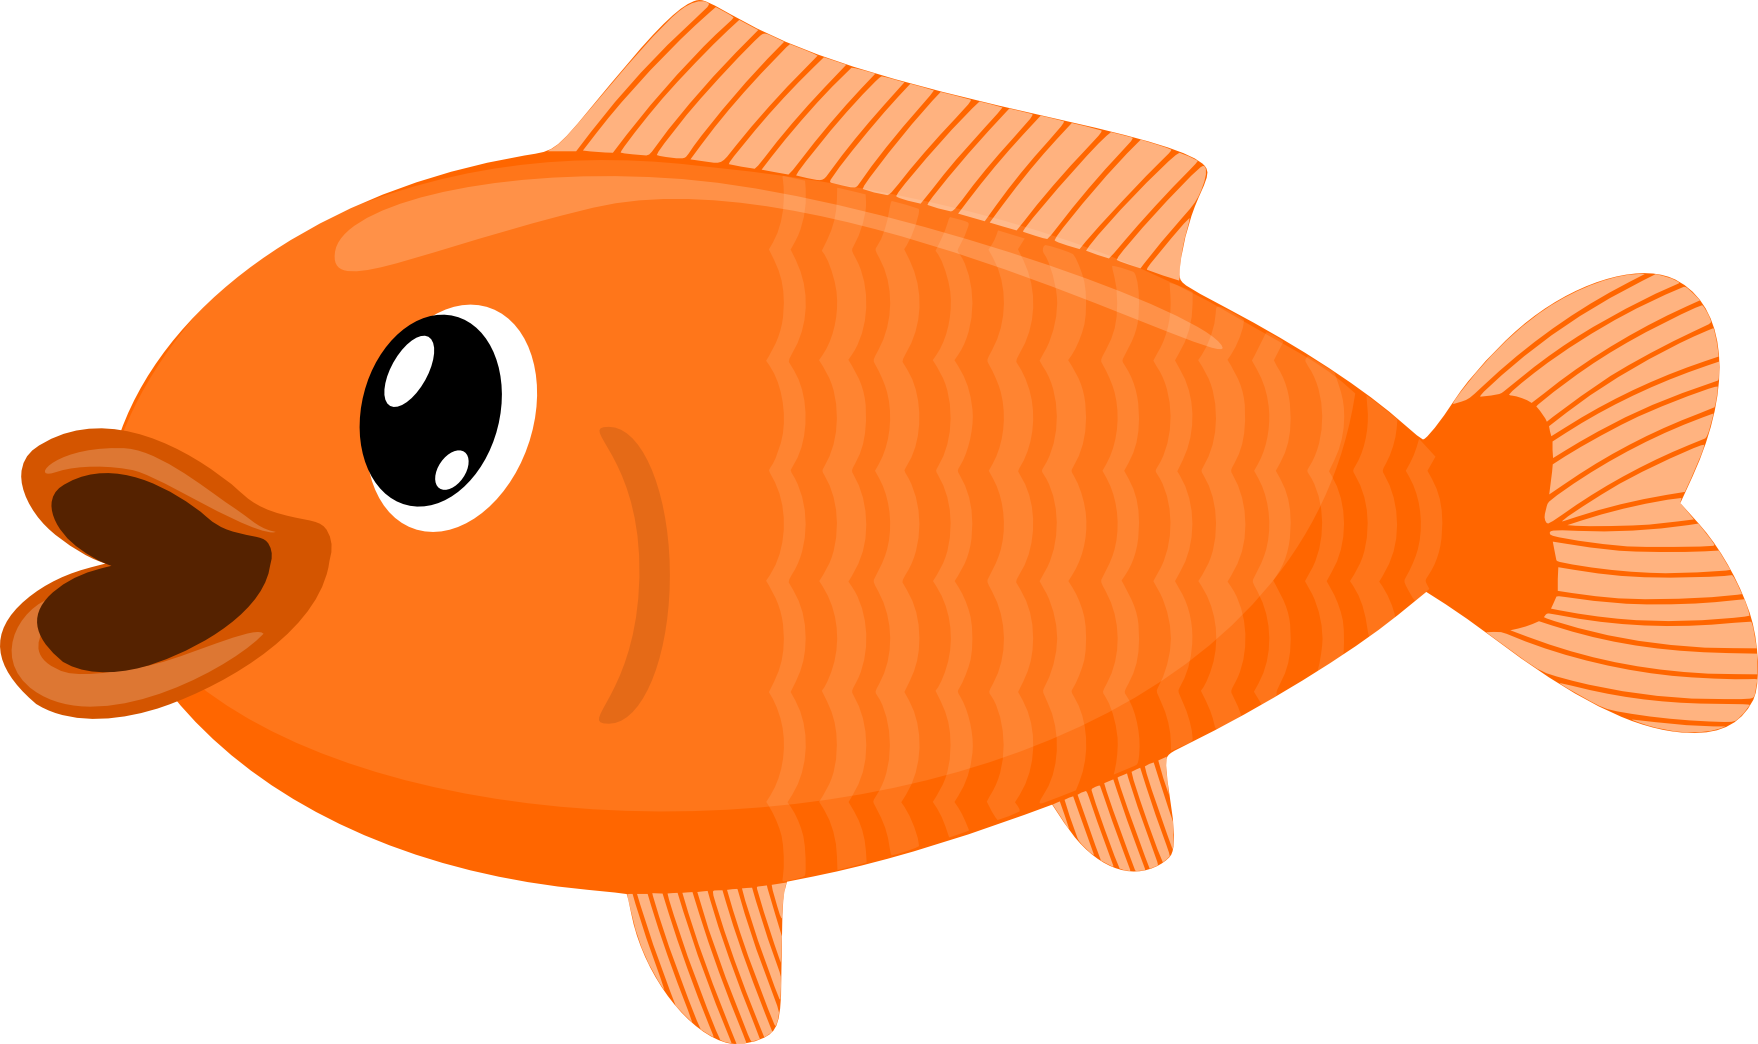 Fish clipart png clip royalty free library Koi Fish Clipart at GetDrawings.com | Free for personal use Koi Fish ... clip royalty free library